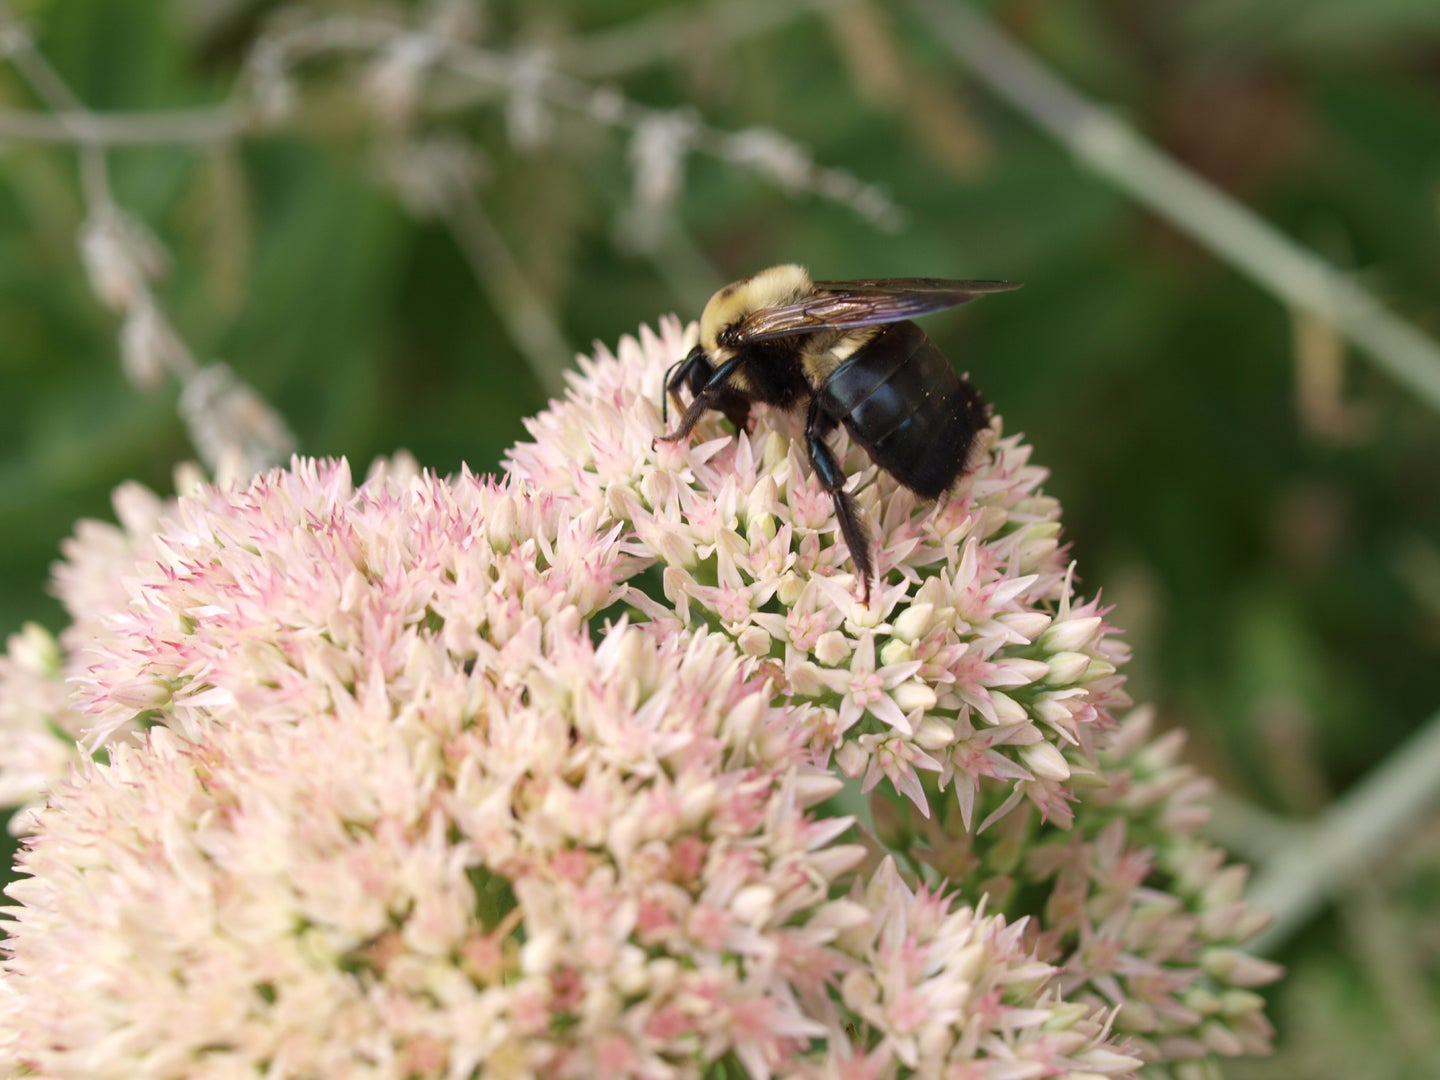 A carpenter bee on a white flower.